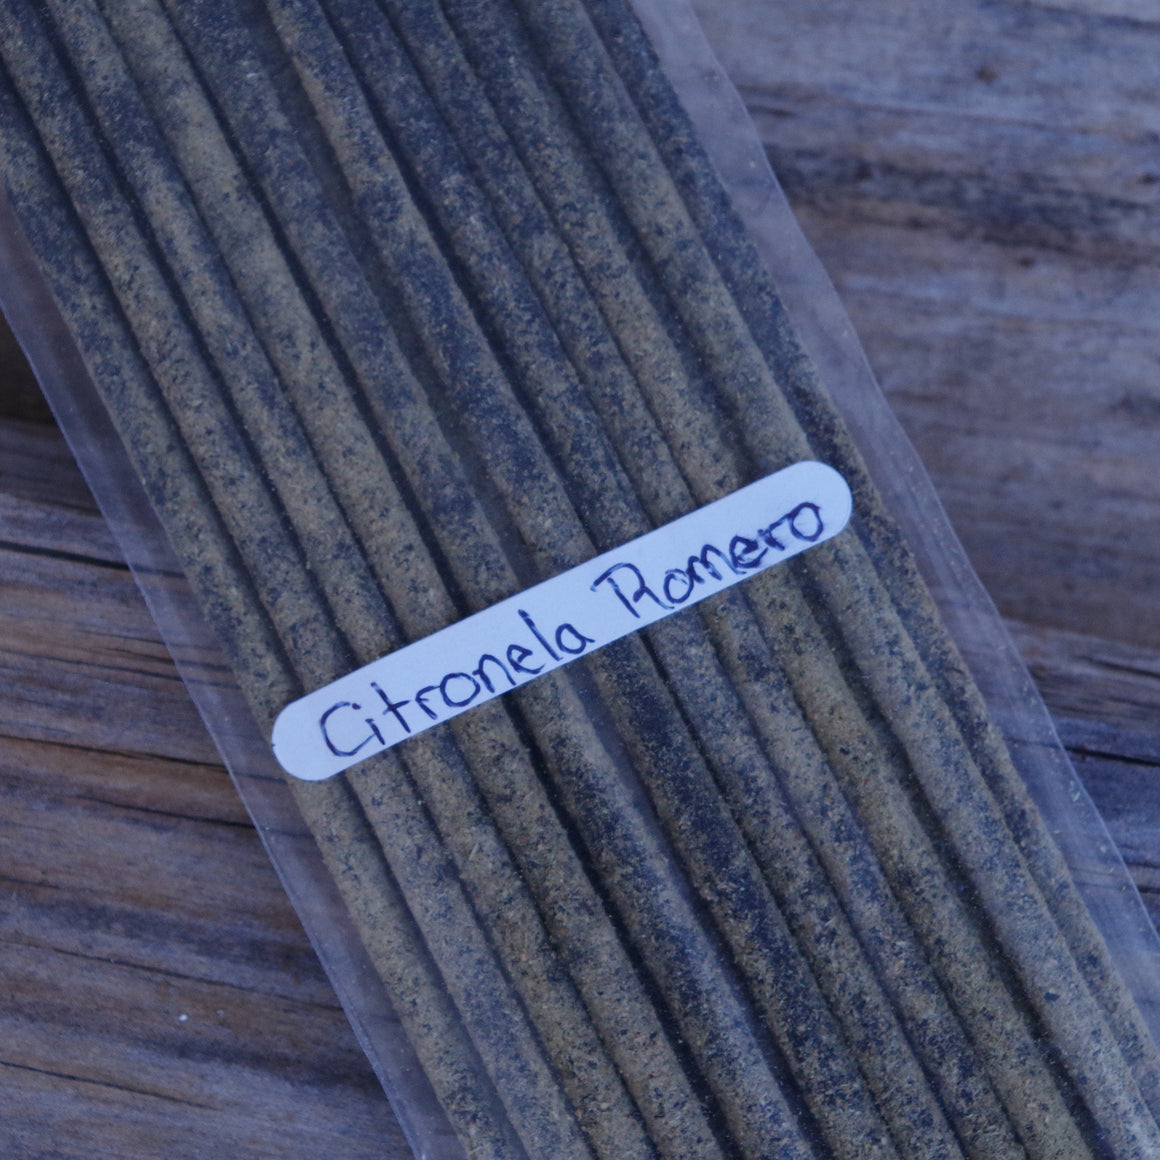 20 Rosemary & Citronella Incense Sticks Handrolled In Mexico Long Duration 1.5 hours